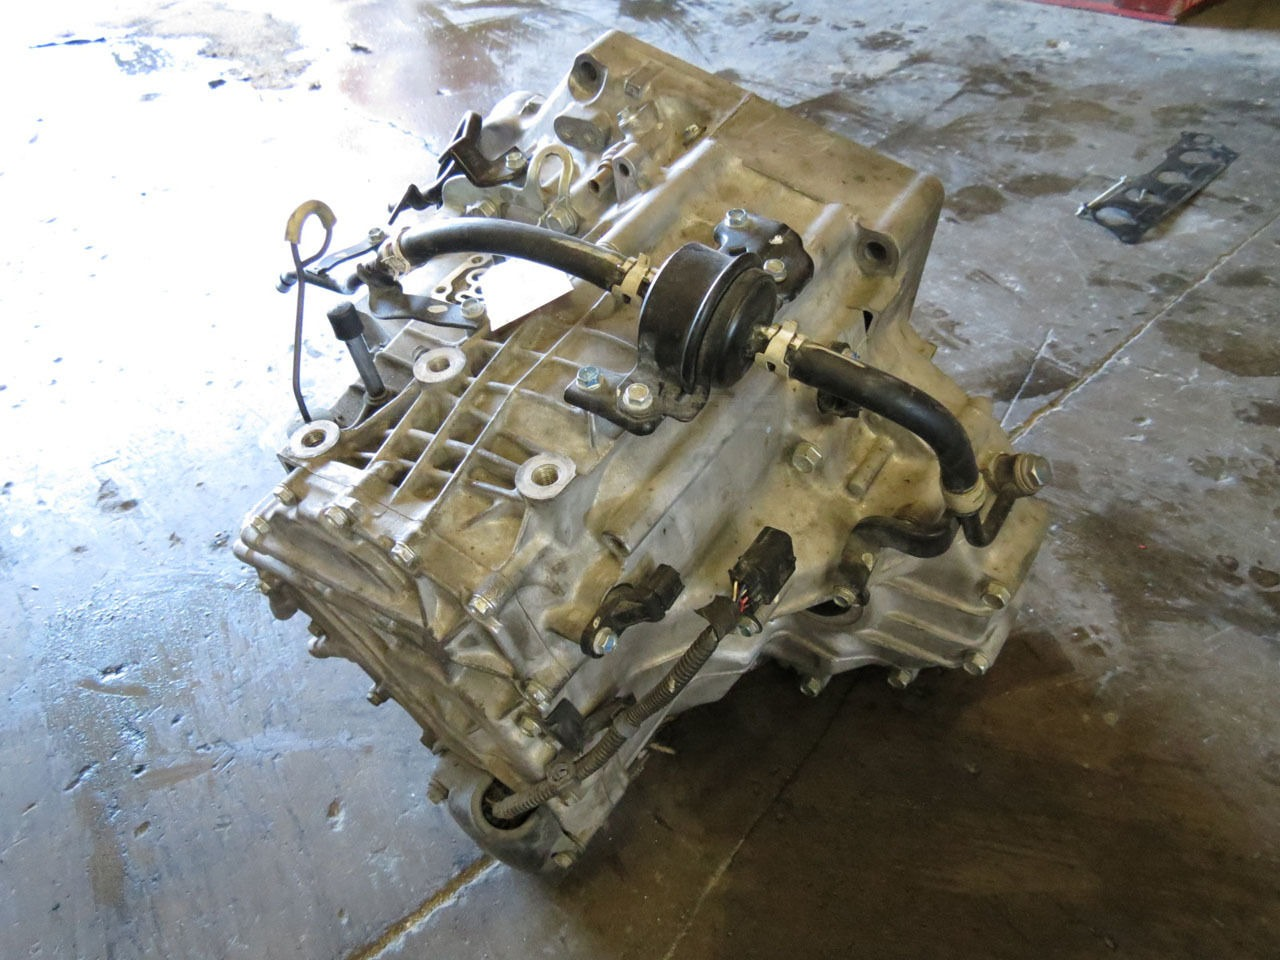 ... Honda Accord 4 Cyl Transmission Automatic Auto Assembly 115K Miles A/T  08-12 ...